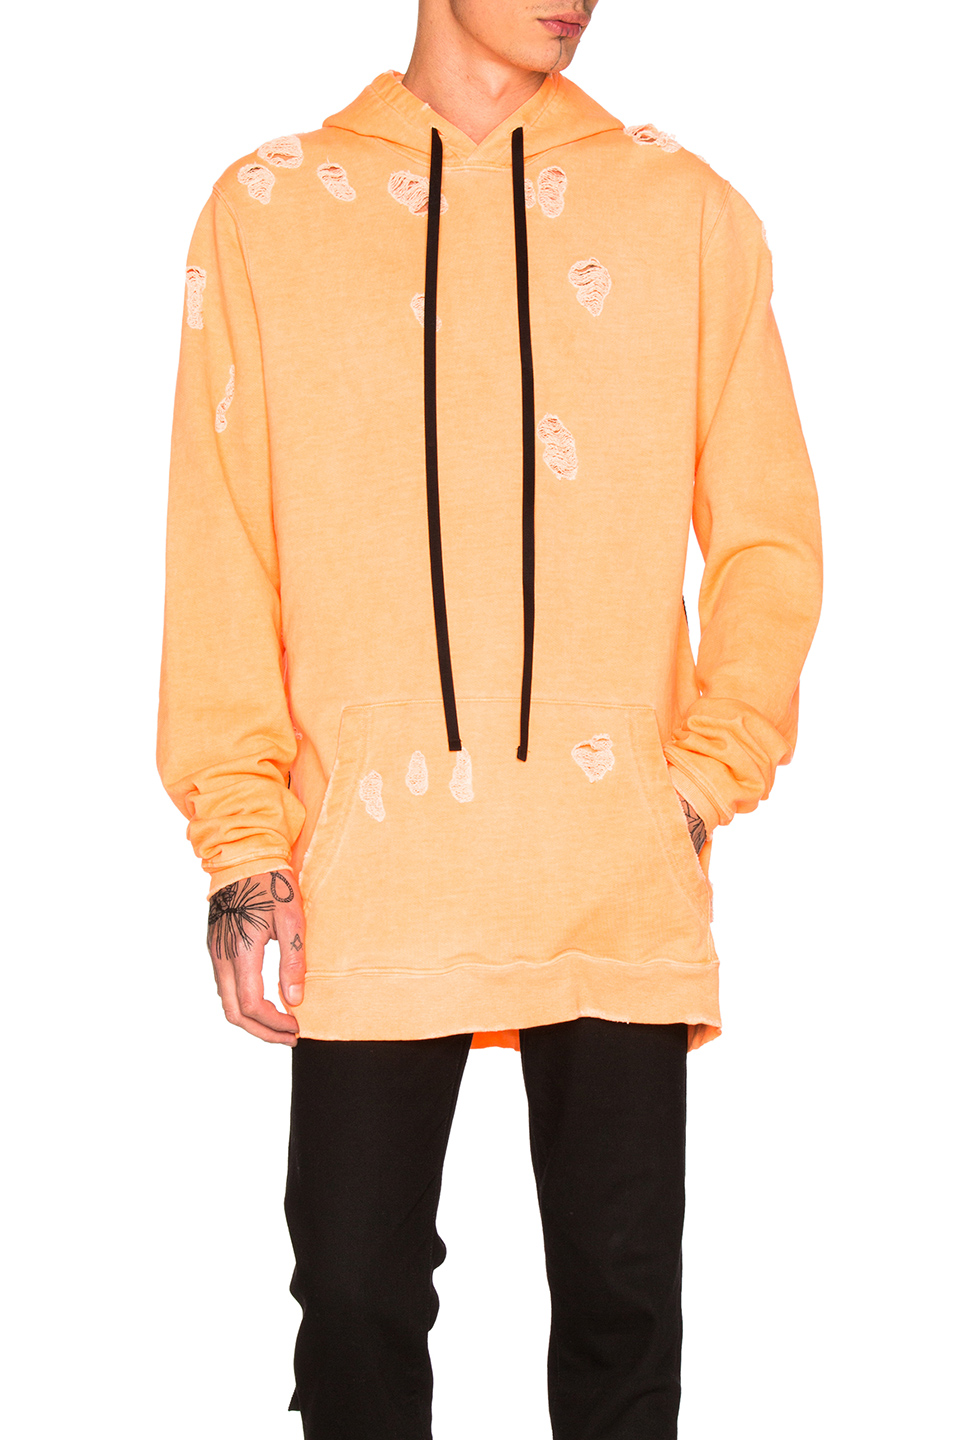 Unravel for FWRD Oversized Hoodie in Orange,Neon